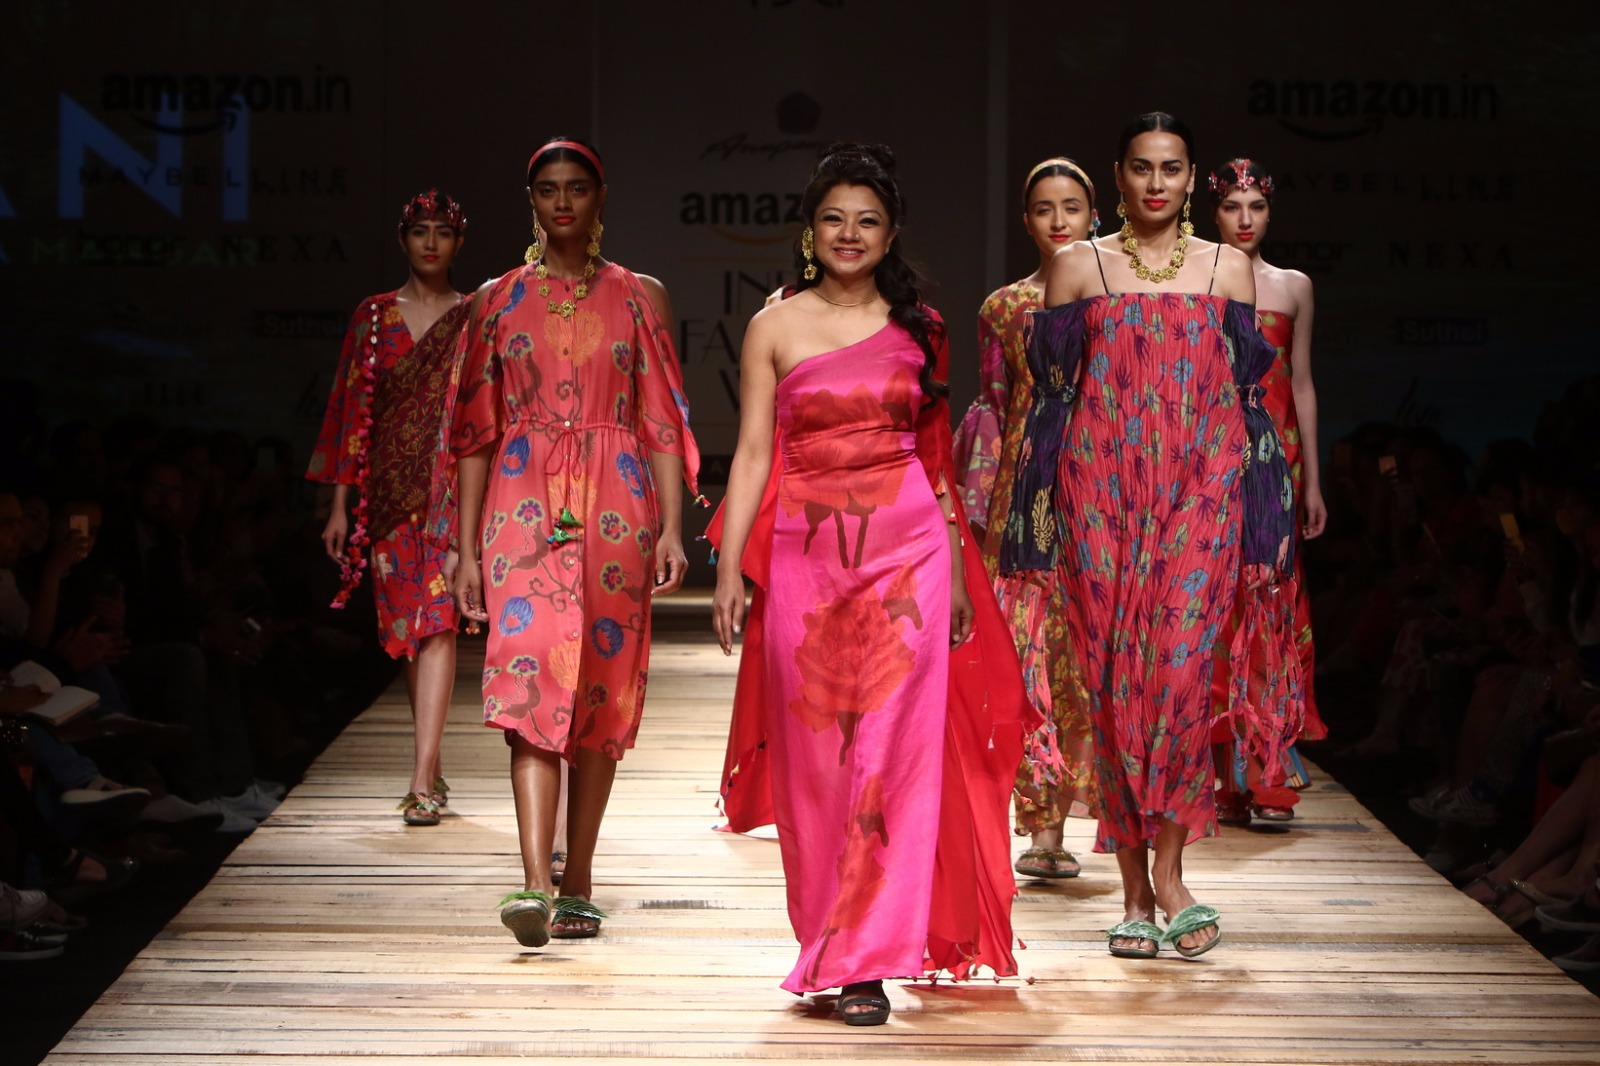 http://www.talksassy.com/wp-content/uploads/2017/03/Amazon-India-Fashion-Week-Autumn-Winter-2017-32.jpg